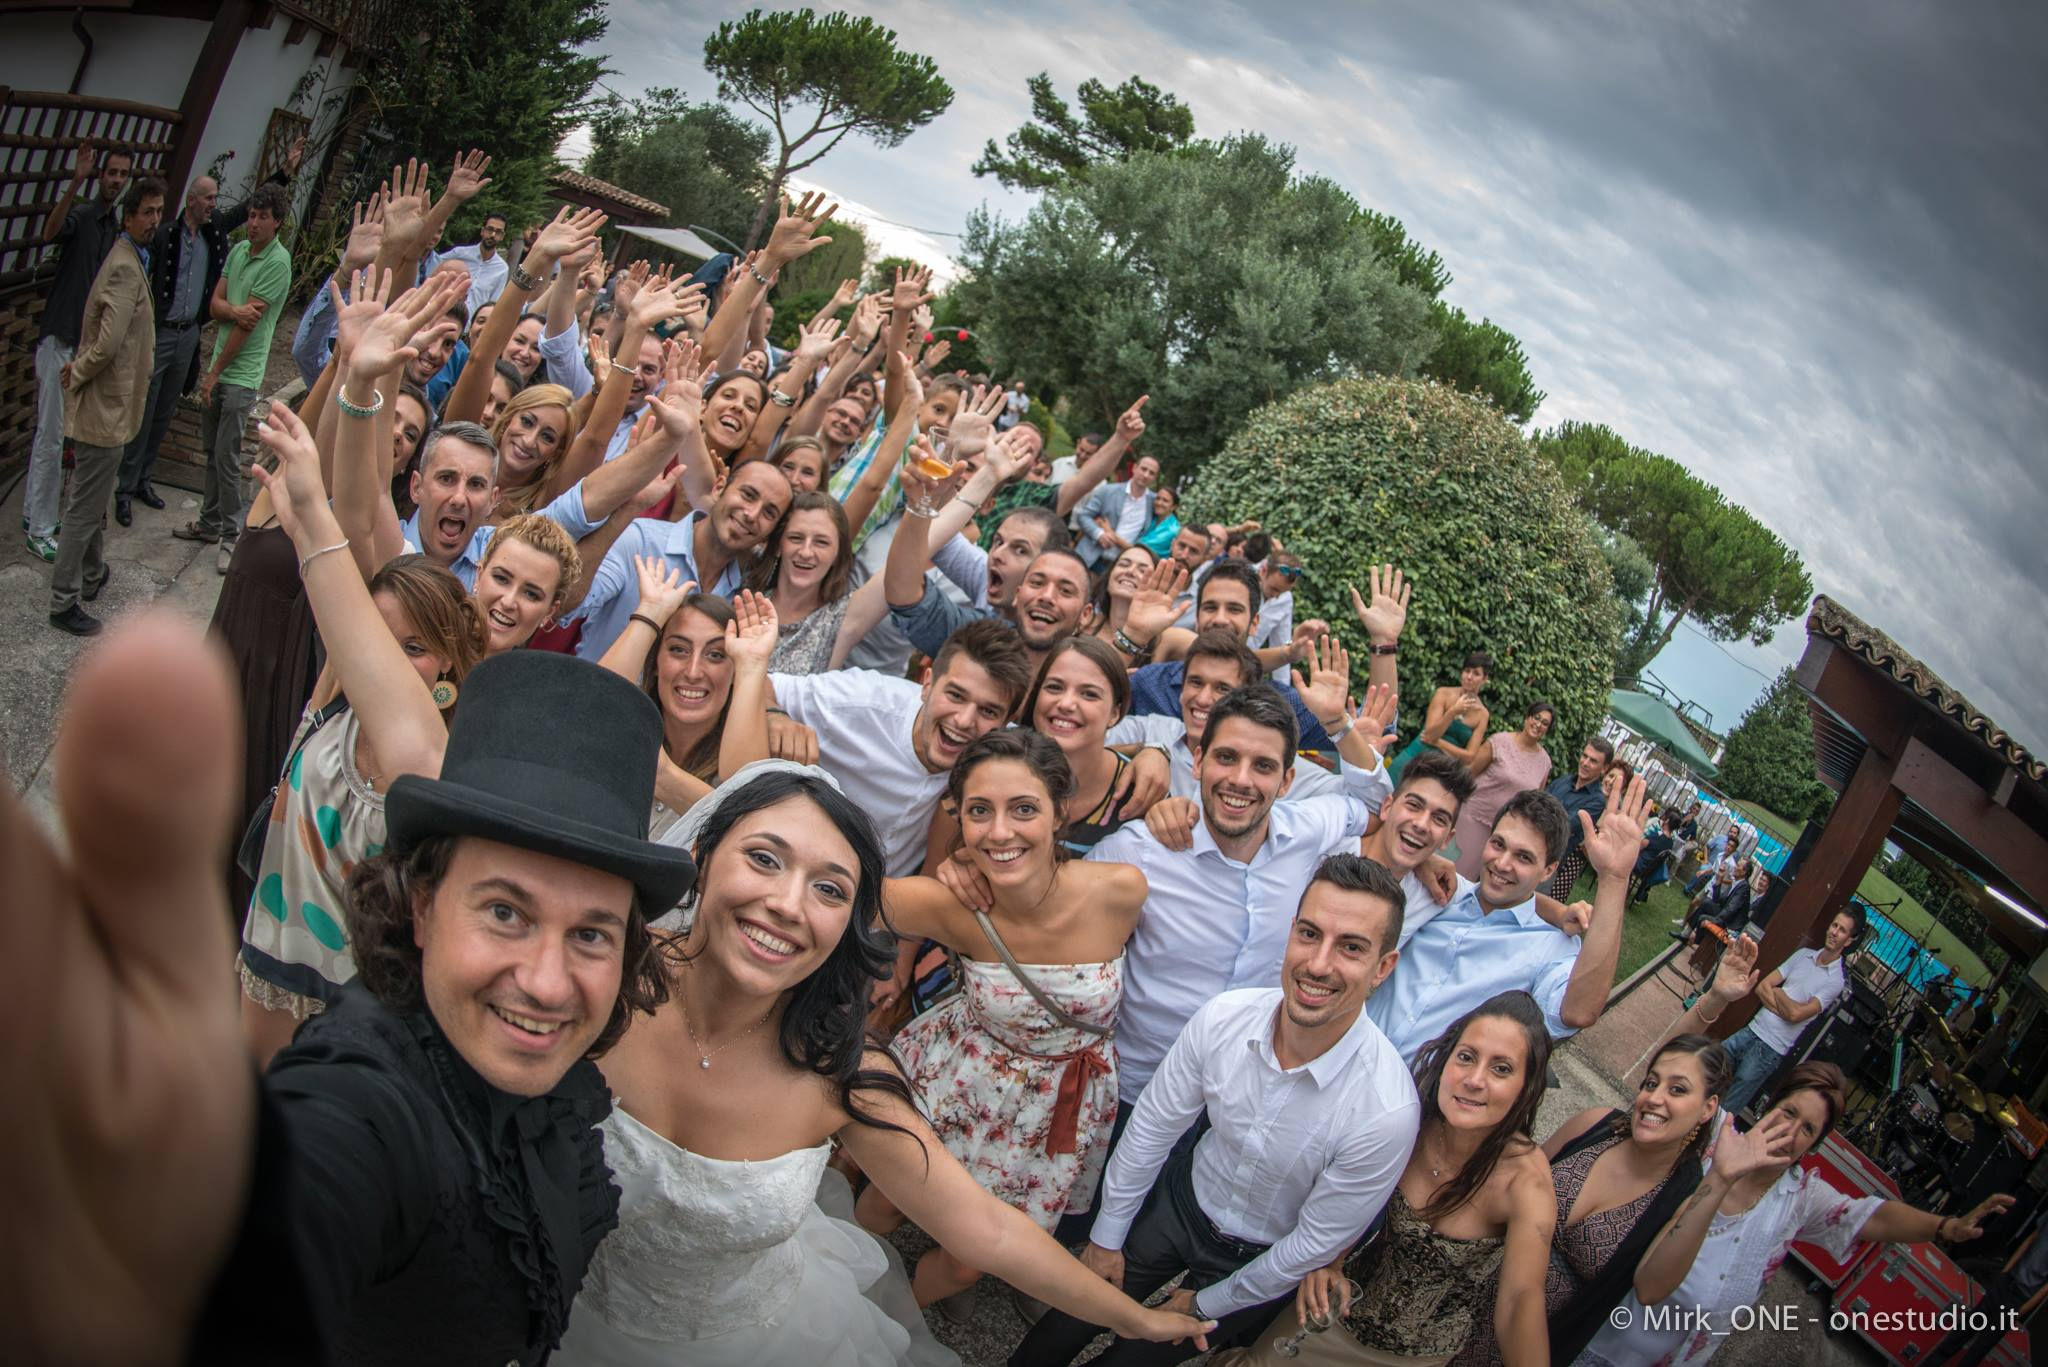 https://lnx.mirkone.it/wp-content/uploads/2018/03/mirk_ONE-fotografo-matrimonio-00888.jpg